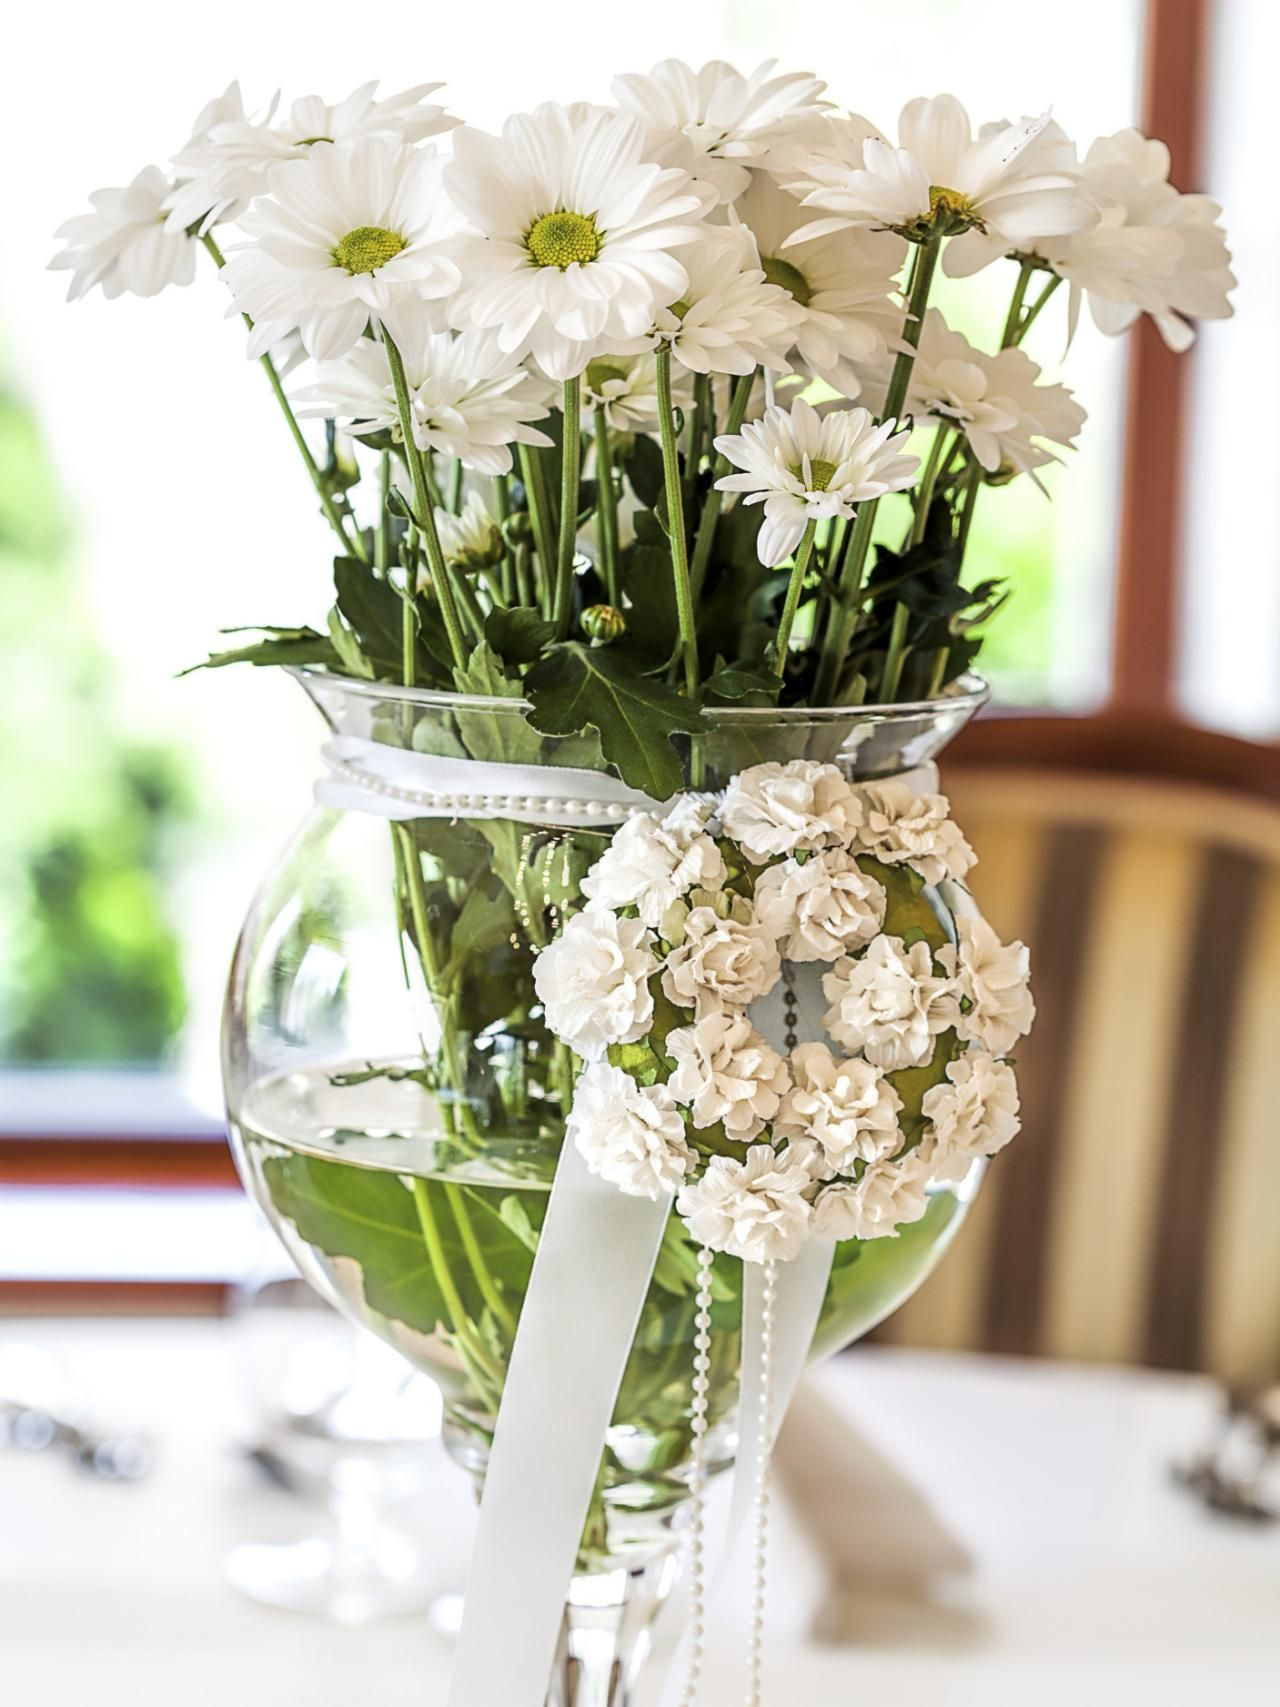 Rustic wedding decorations you can make rustic style diy network rustic wedding decorations you can make junglespirit Choice Image